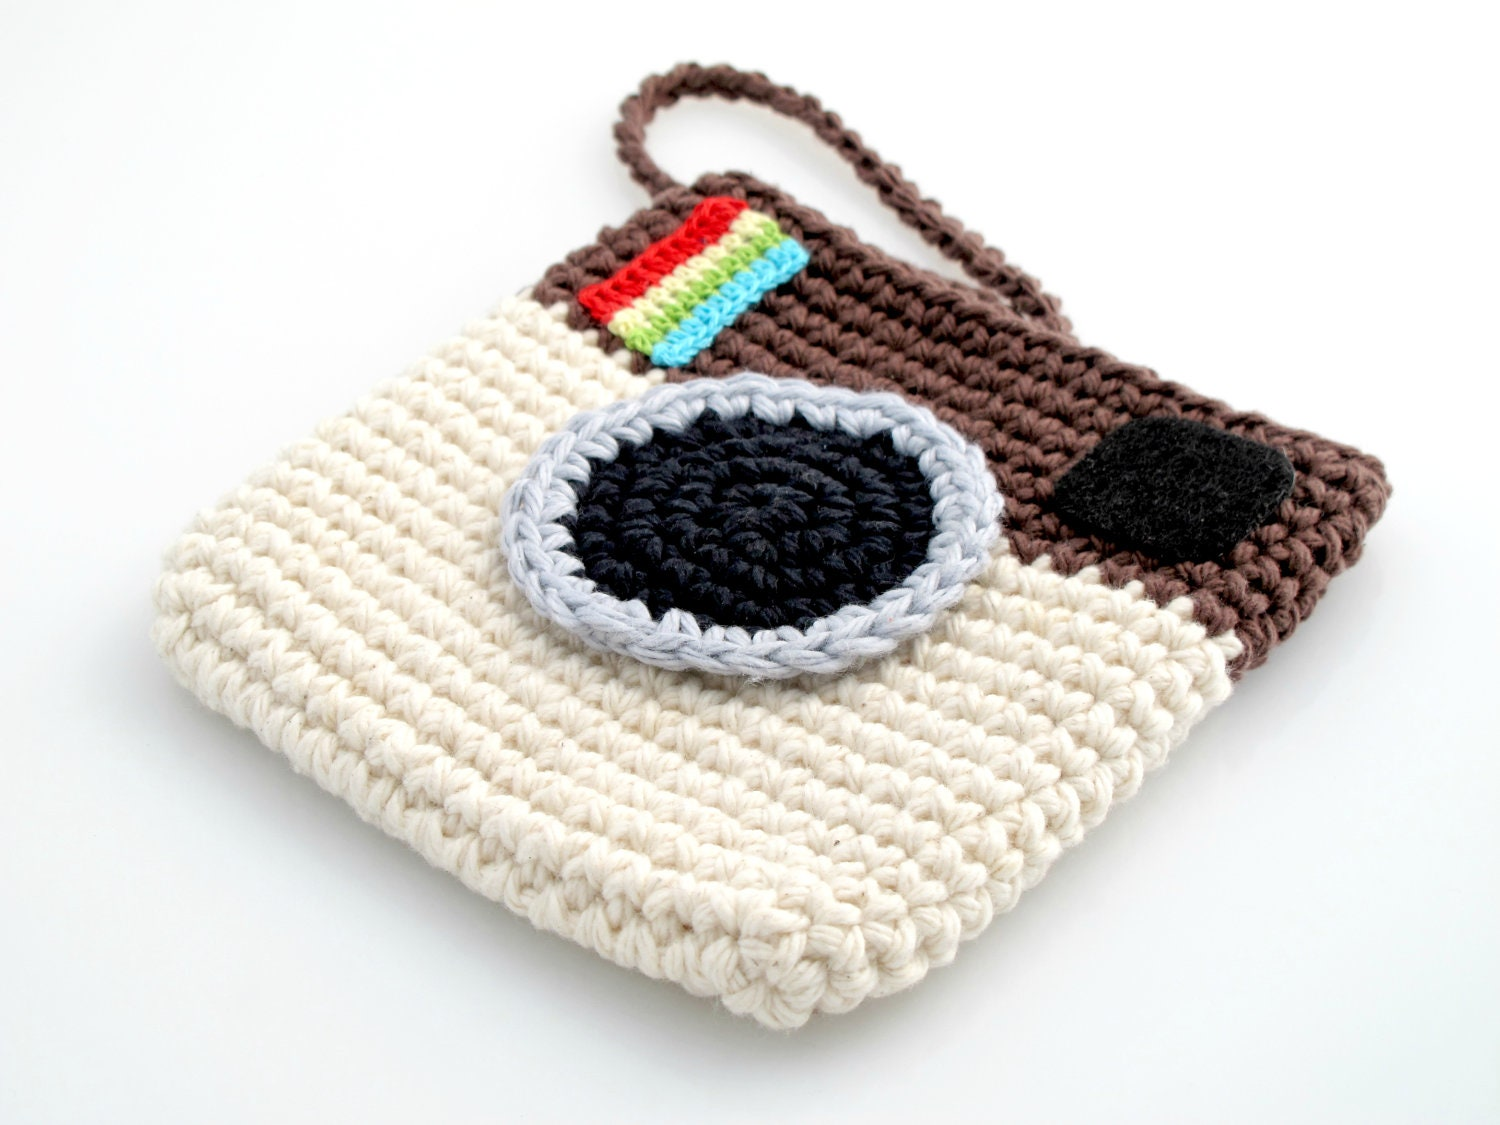 Mini Crochet Bag : Crocheted Instagram Mini Bag. Purse. Pouch. by EuniceNeedlecraft